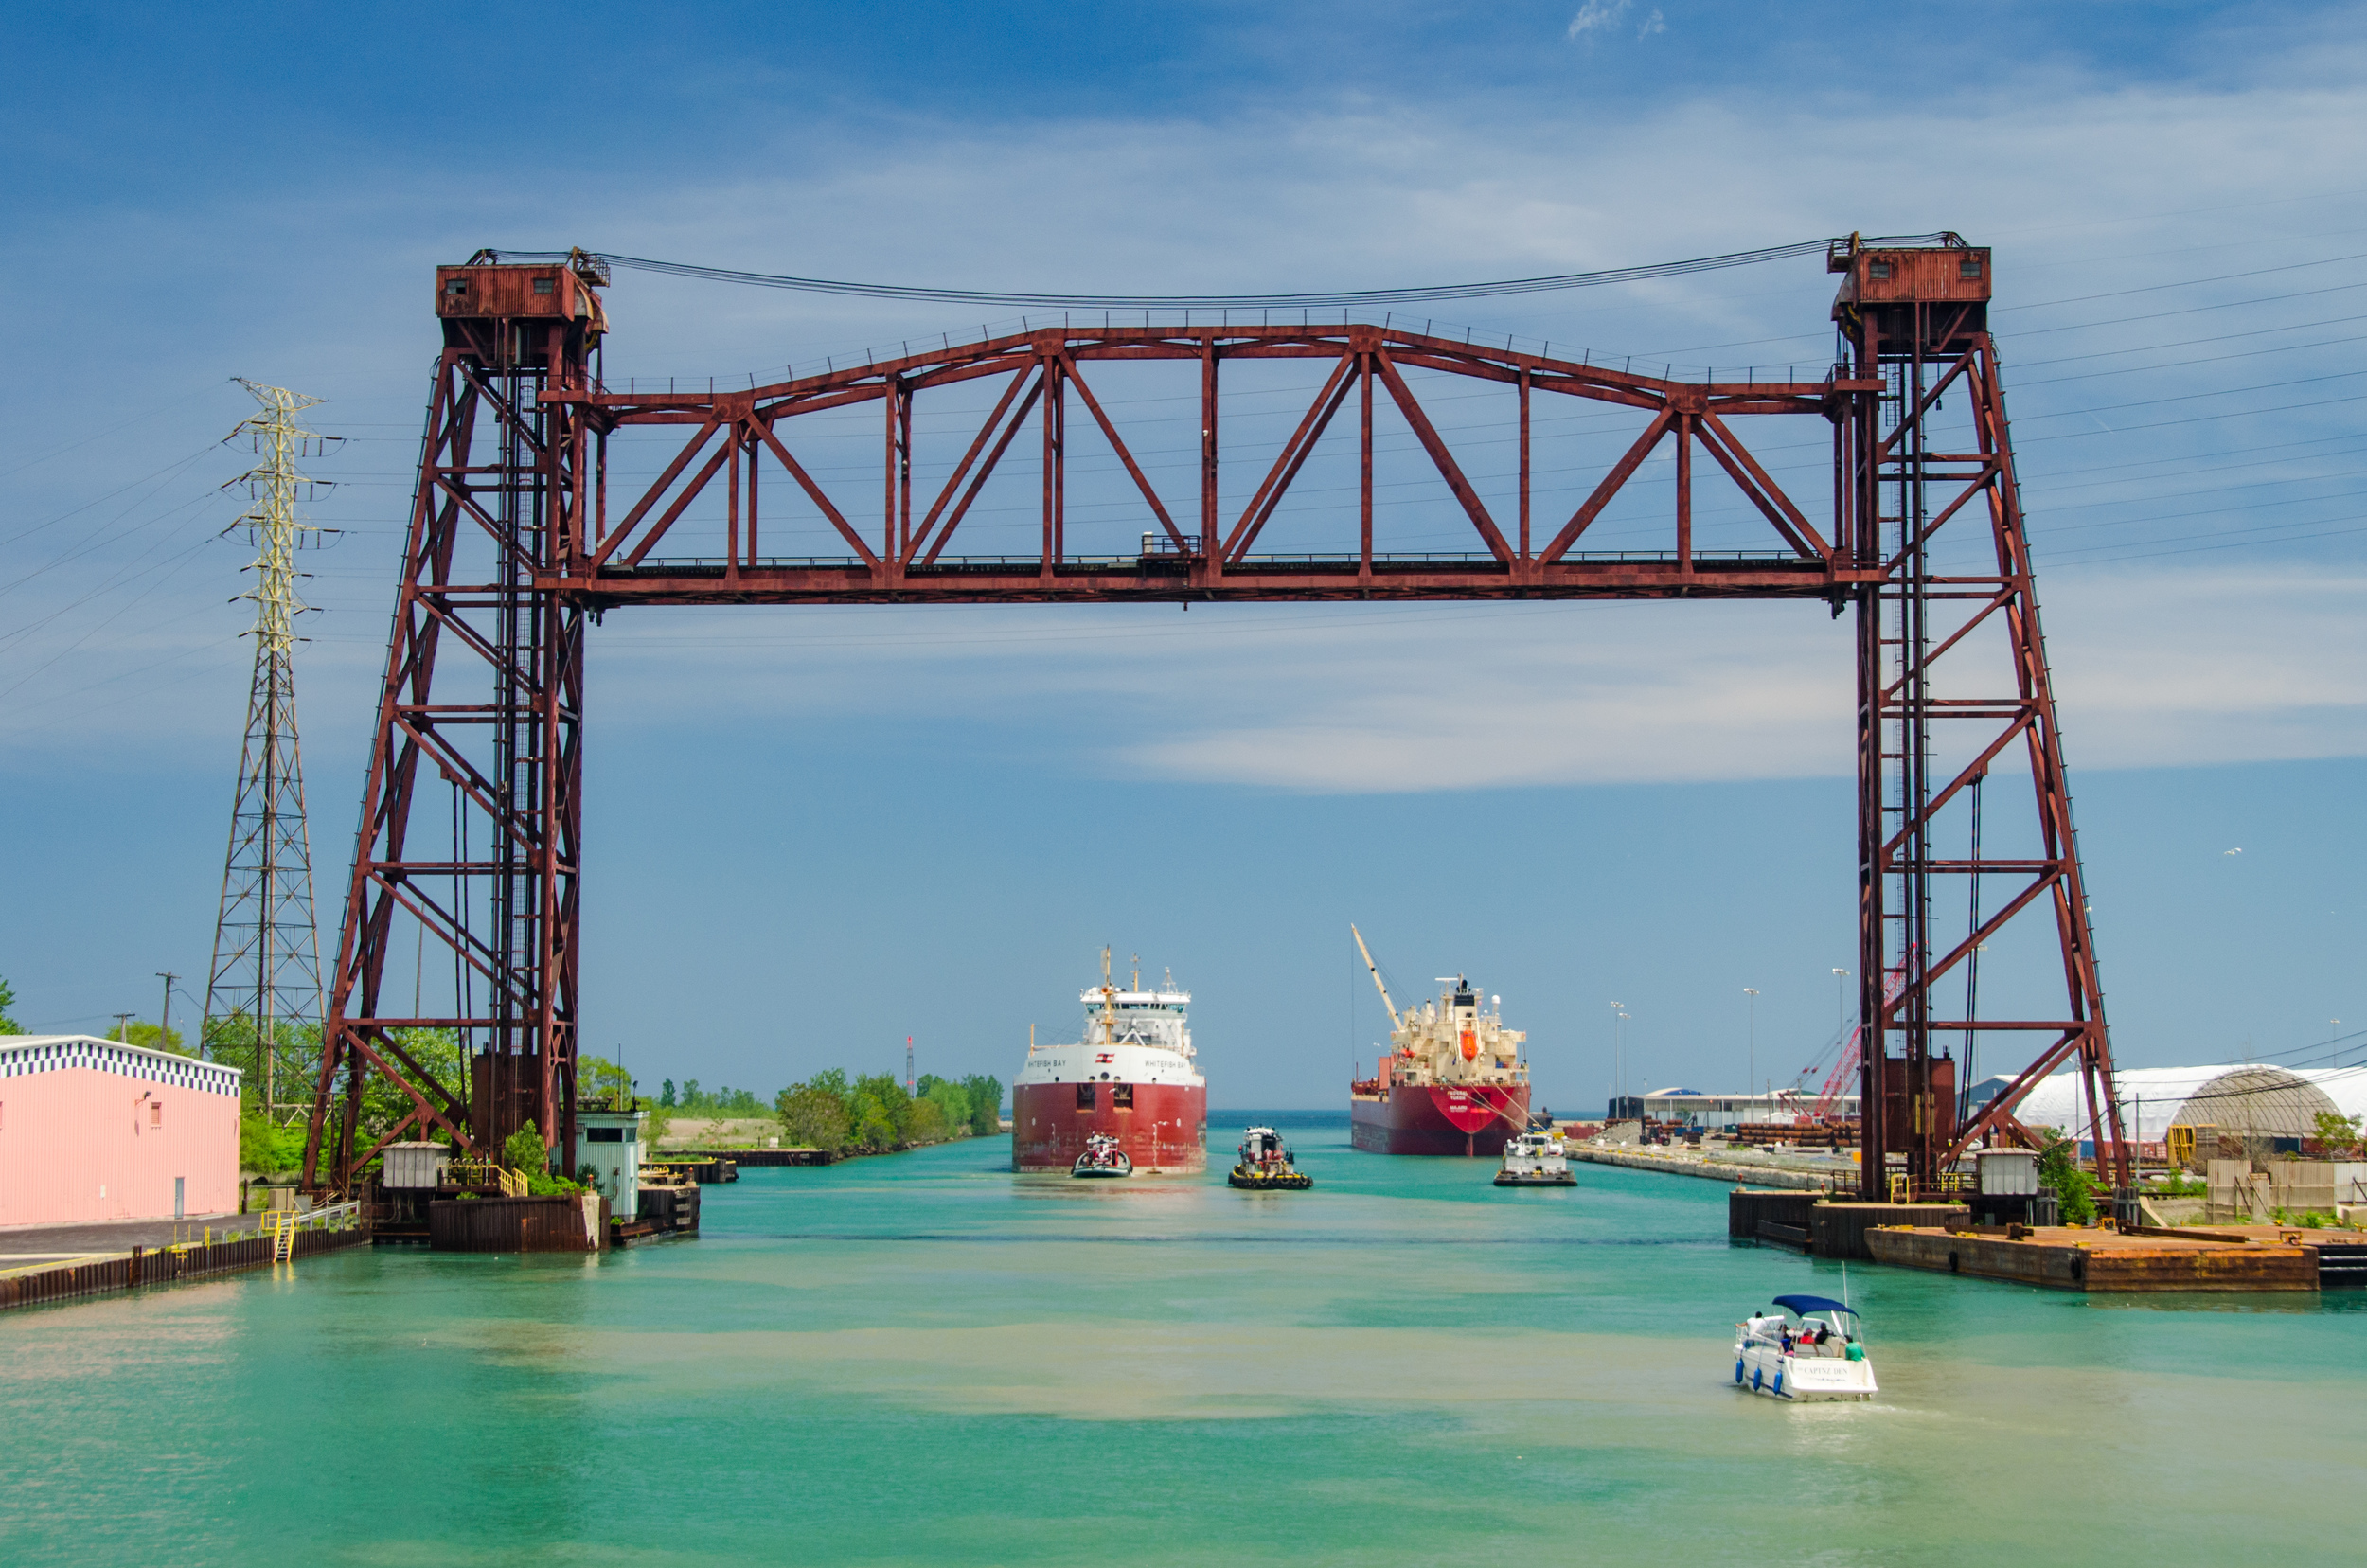 Ships at the Gateway to the Calumet River